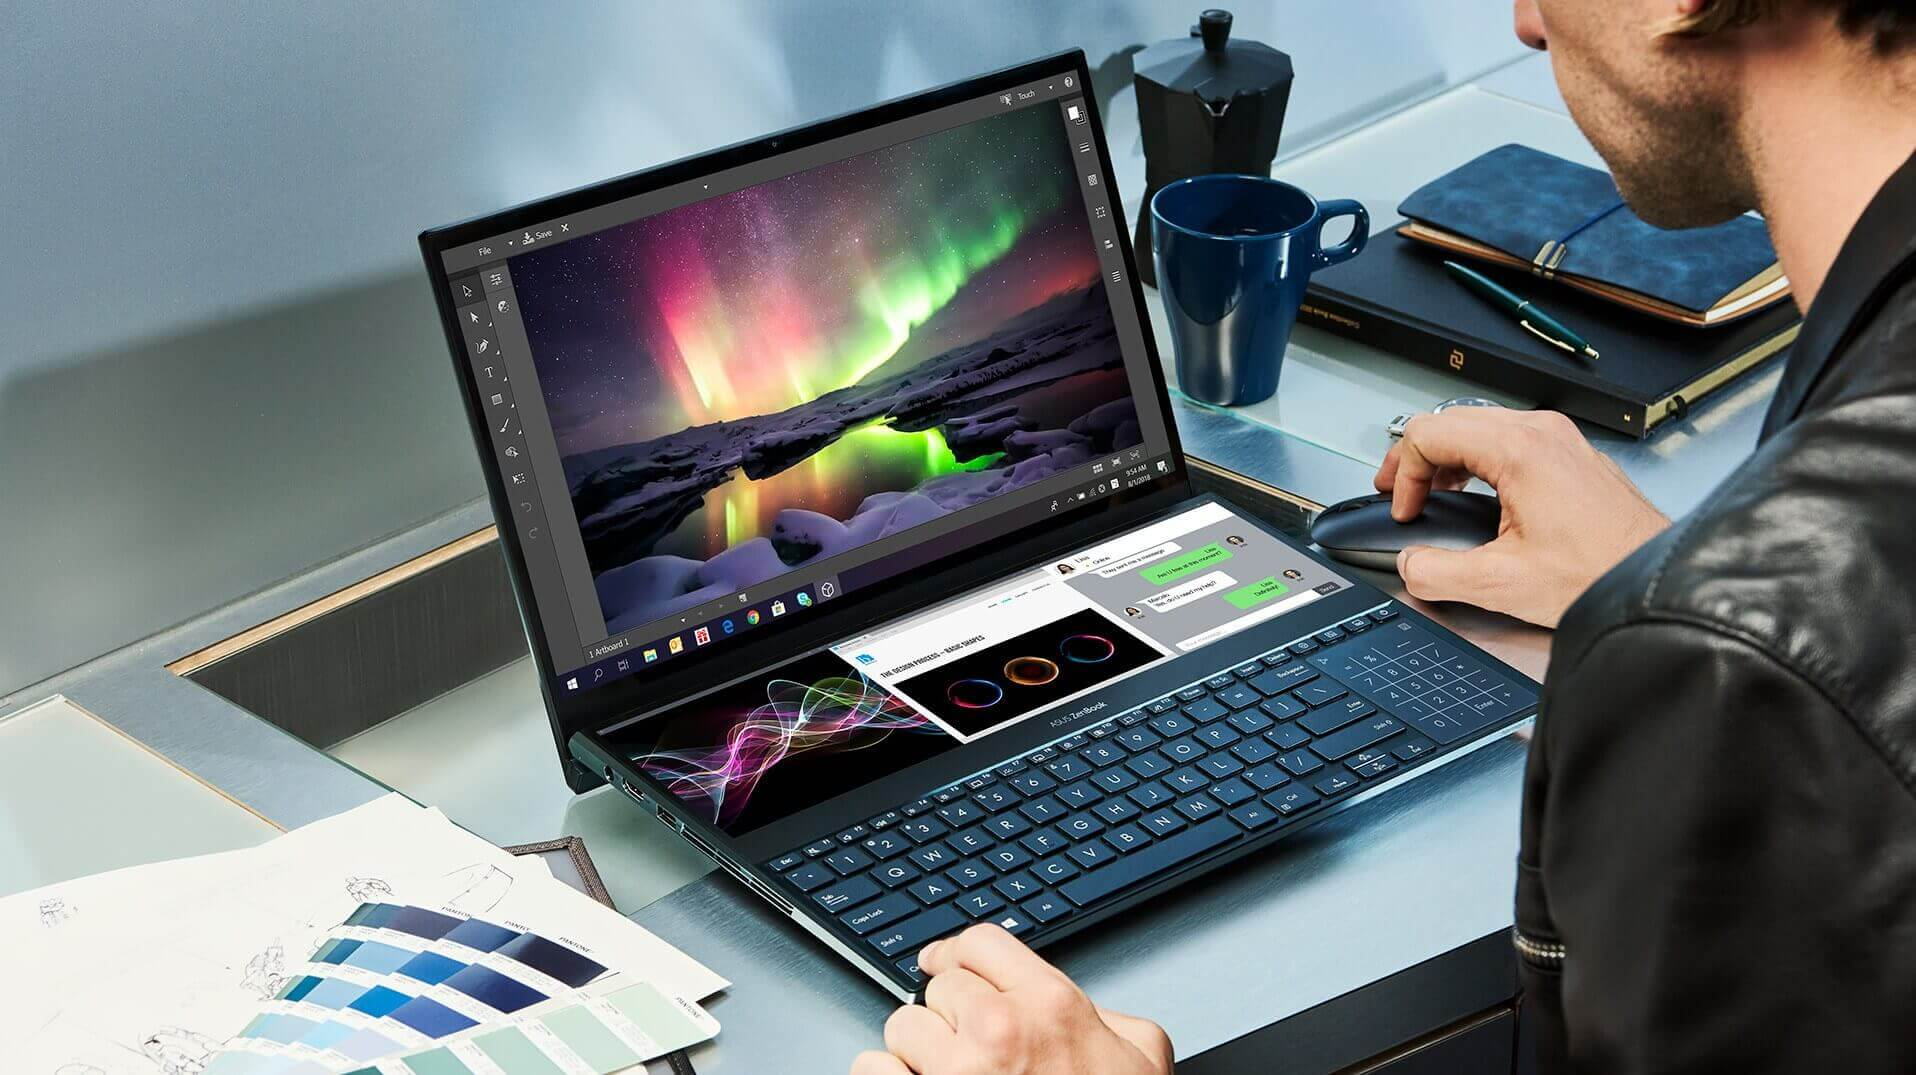 Asus launches ZenBook Pro Duo starting at $2,499.99